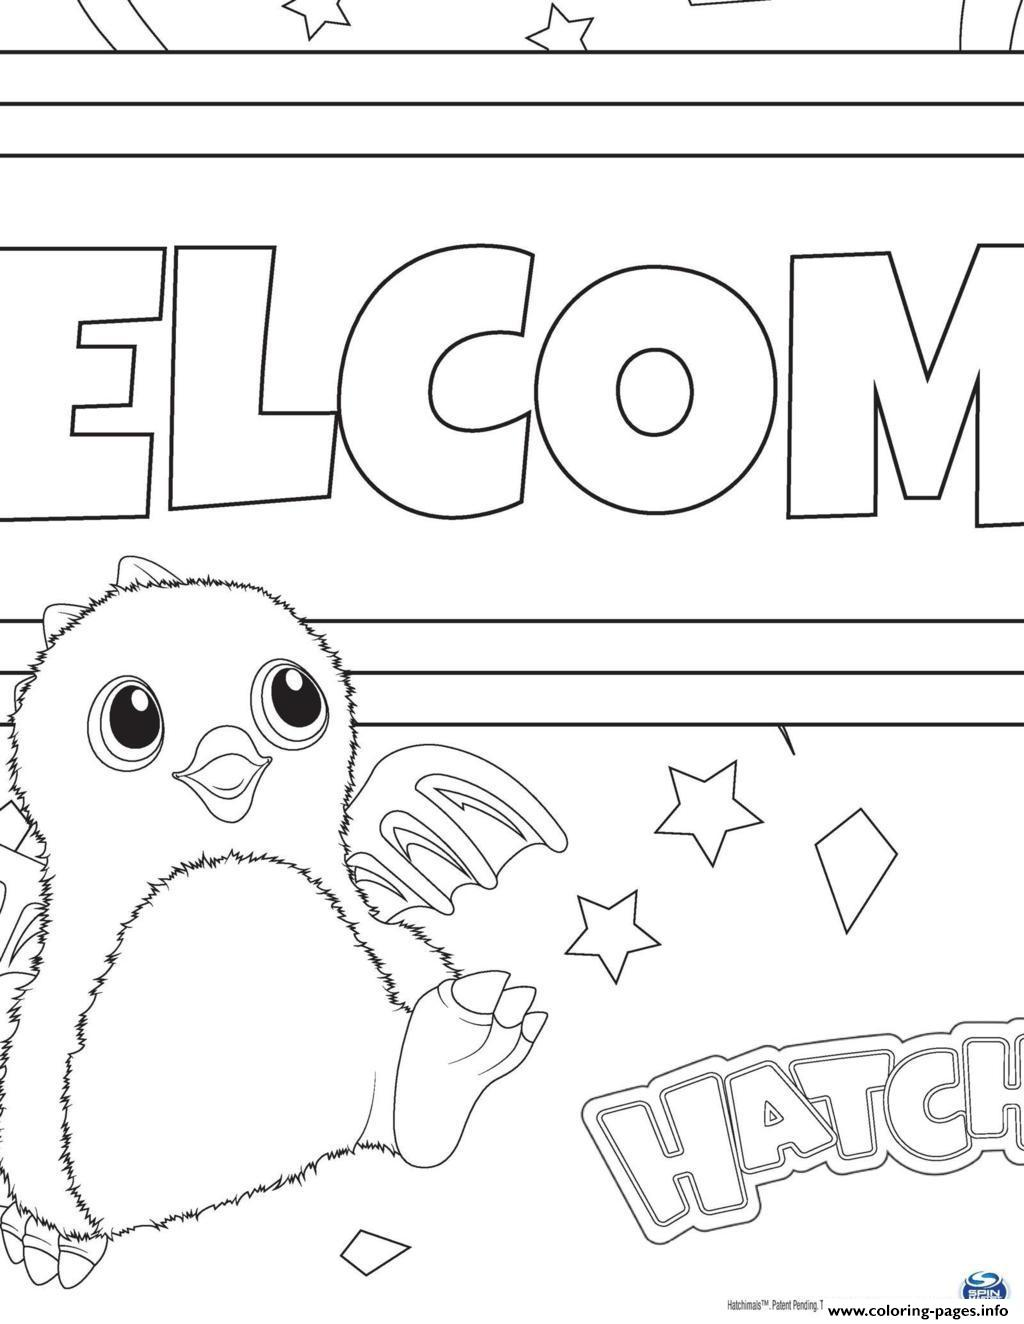 Hatchy hatchimals toy Coloring pages Free Printable